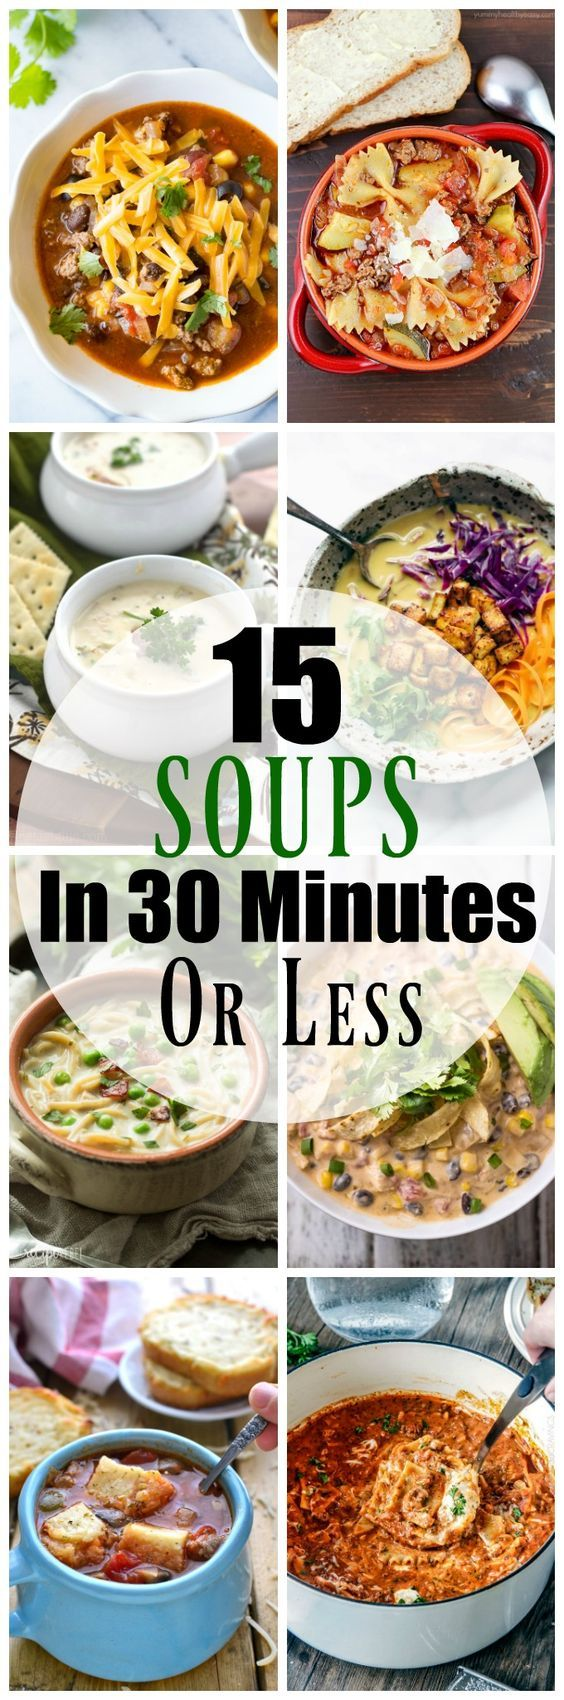 15 Easy Soup Recipes in 30 Minutes or Less ~ all of these comforting fall soups can be made and on the table in 30 minutes or less!